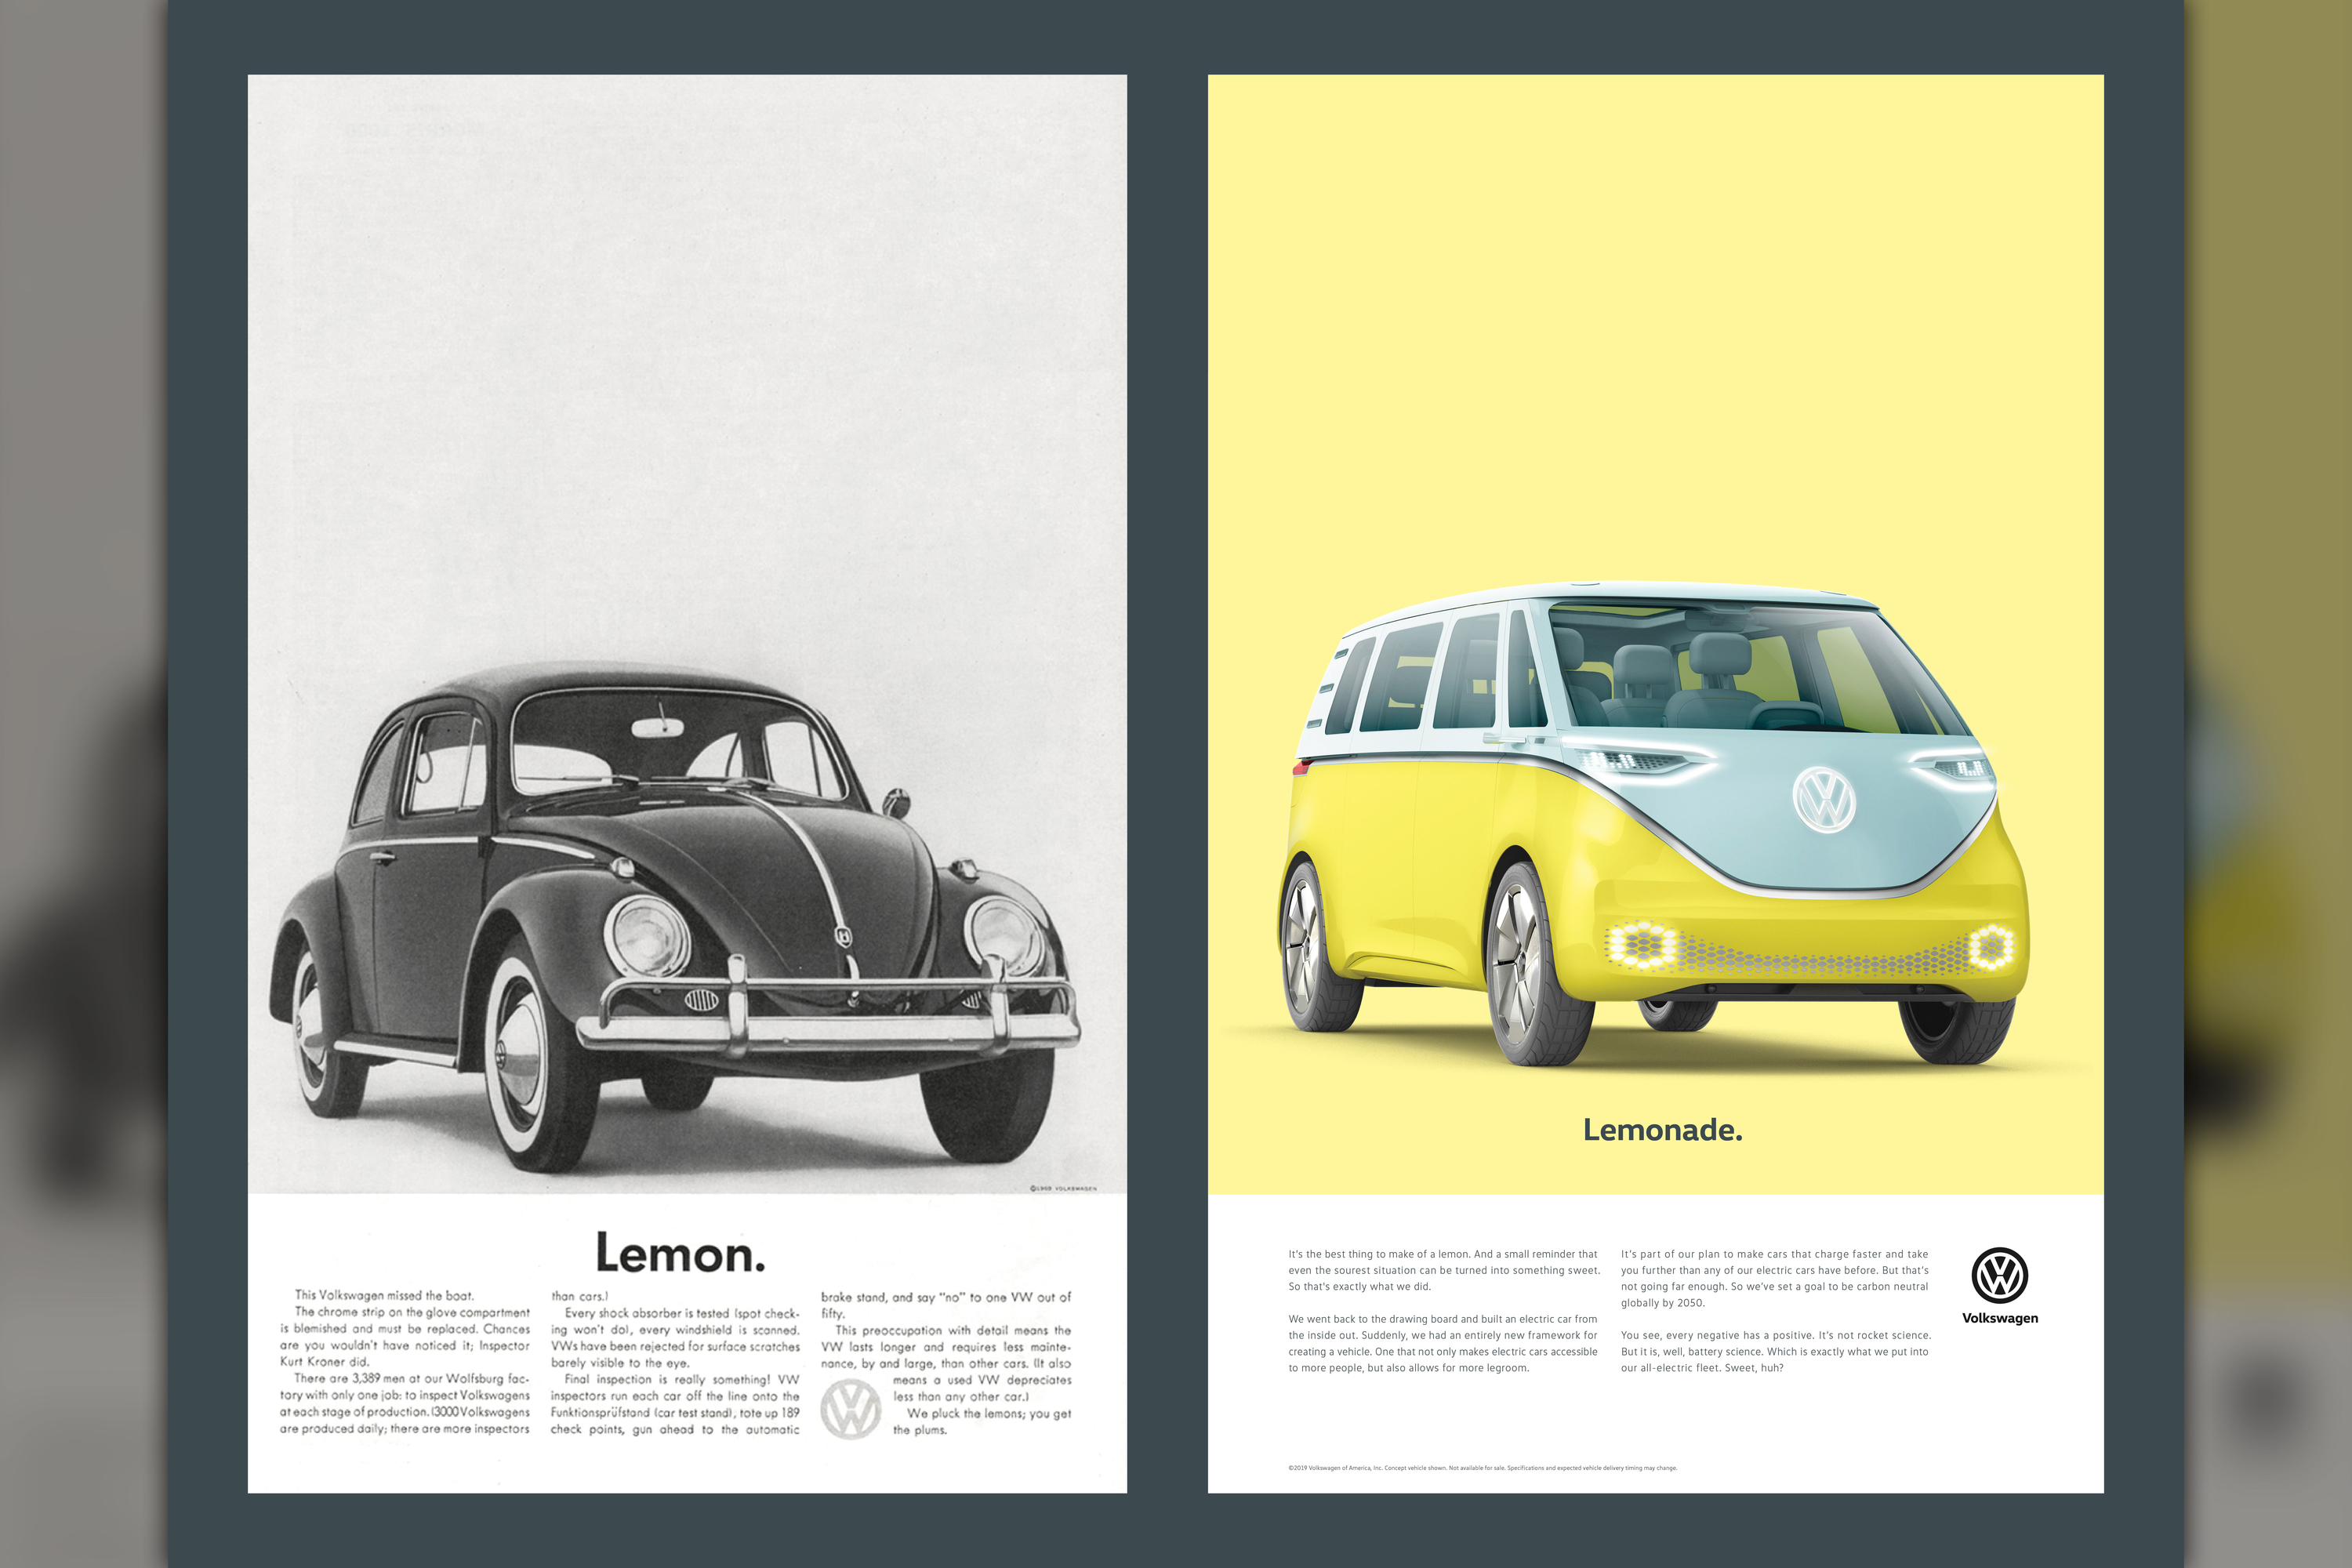 VW: Lemonade